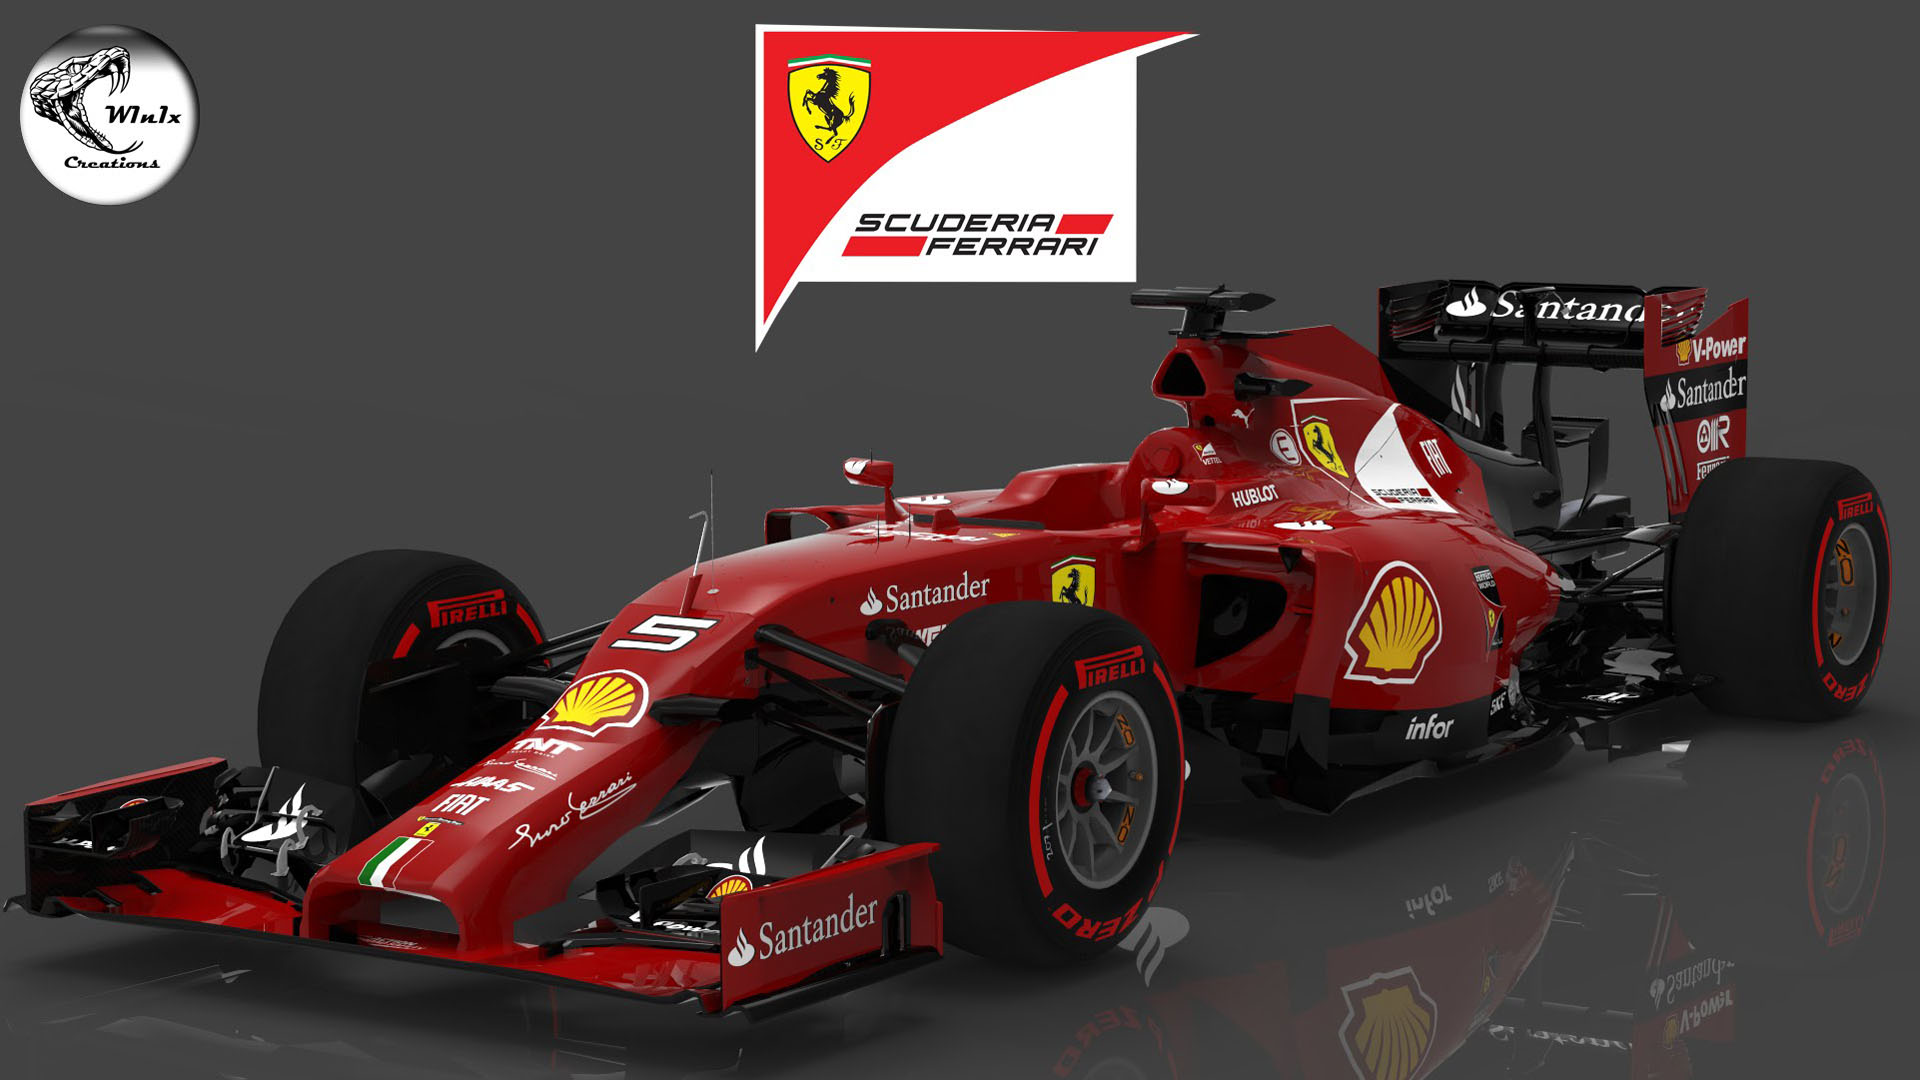 Ferrari F1 Cars Hd Desktop Wallpapers 4k Hd